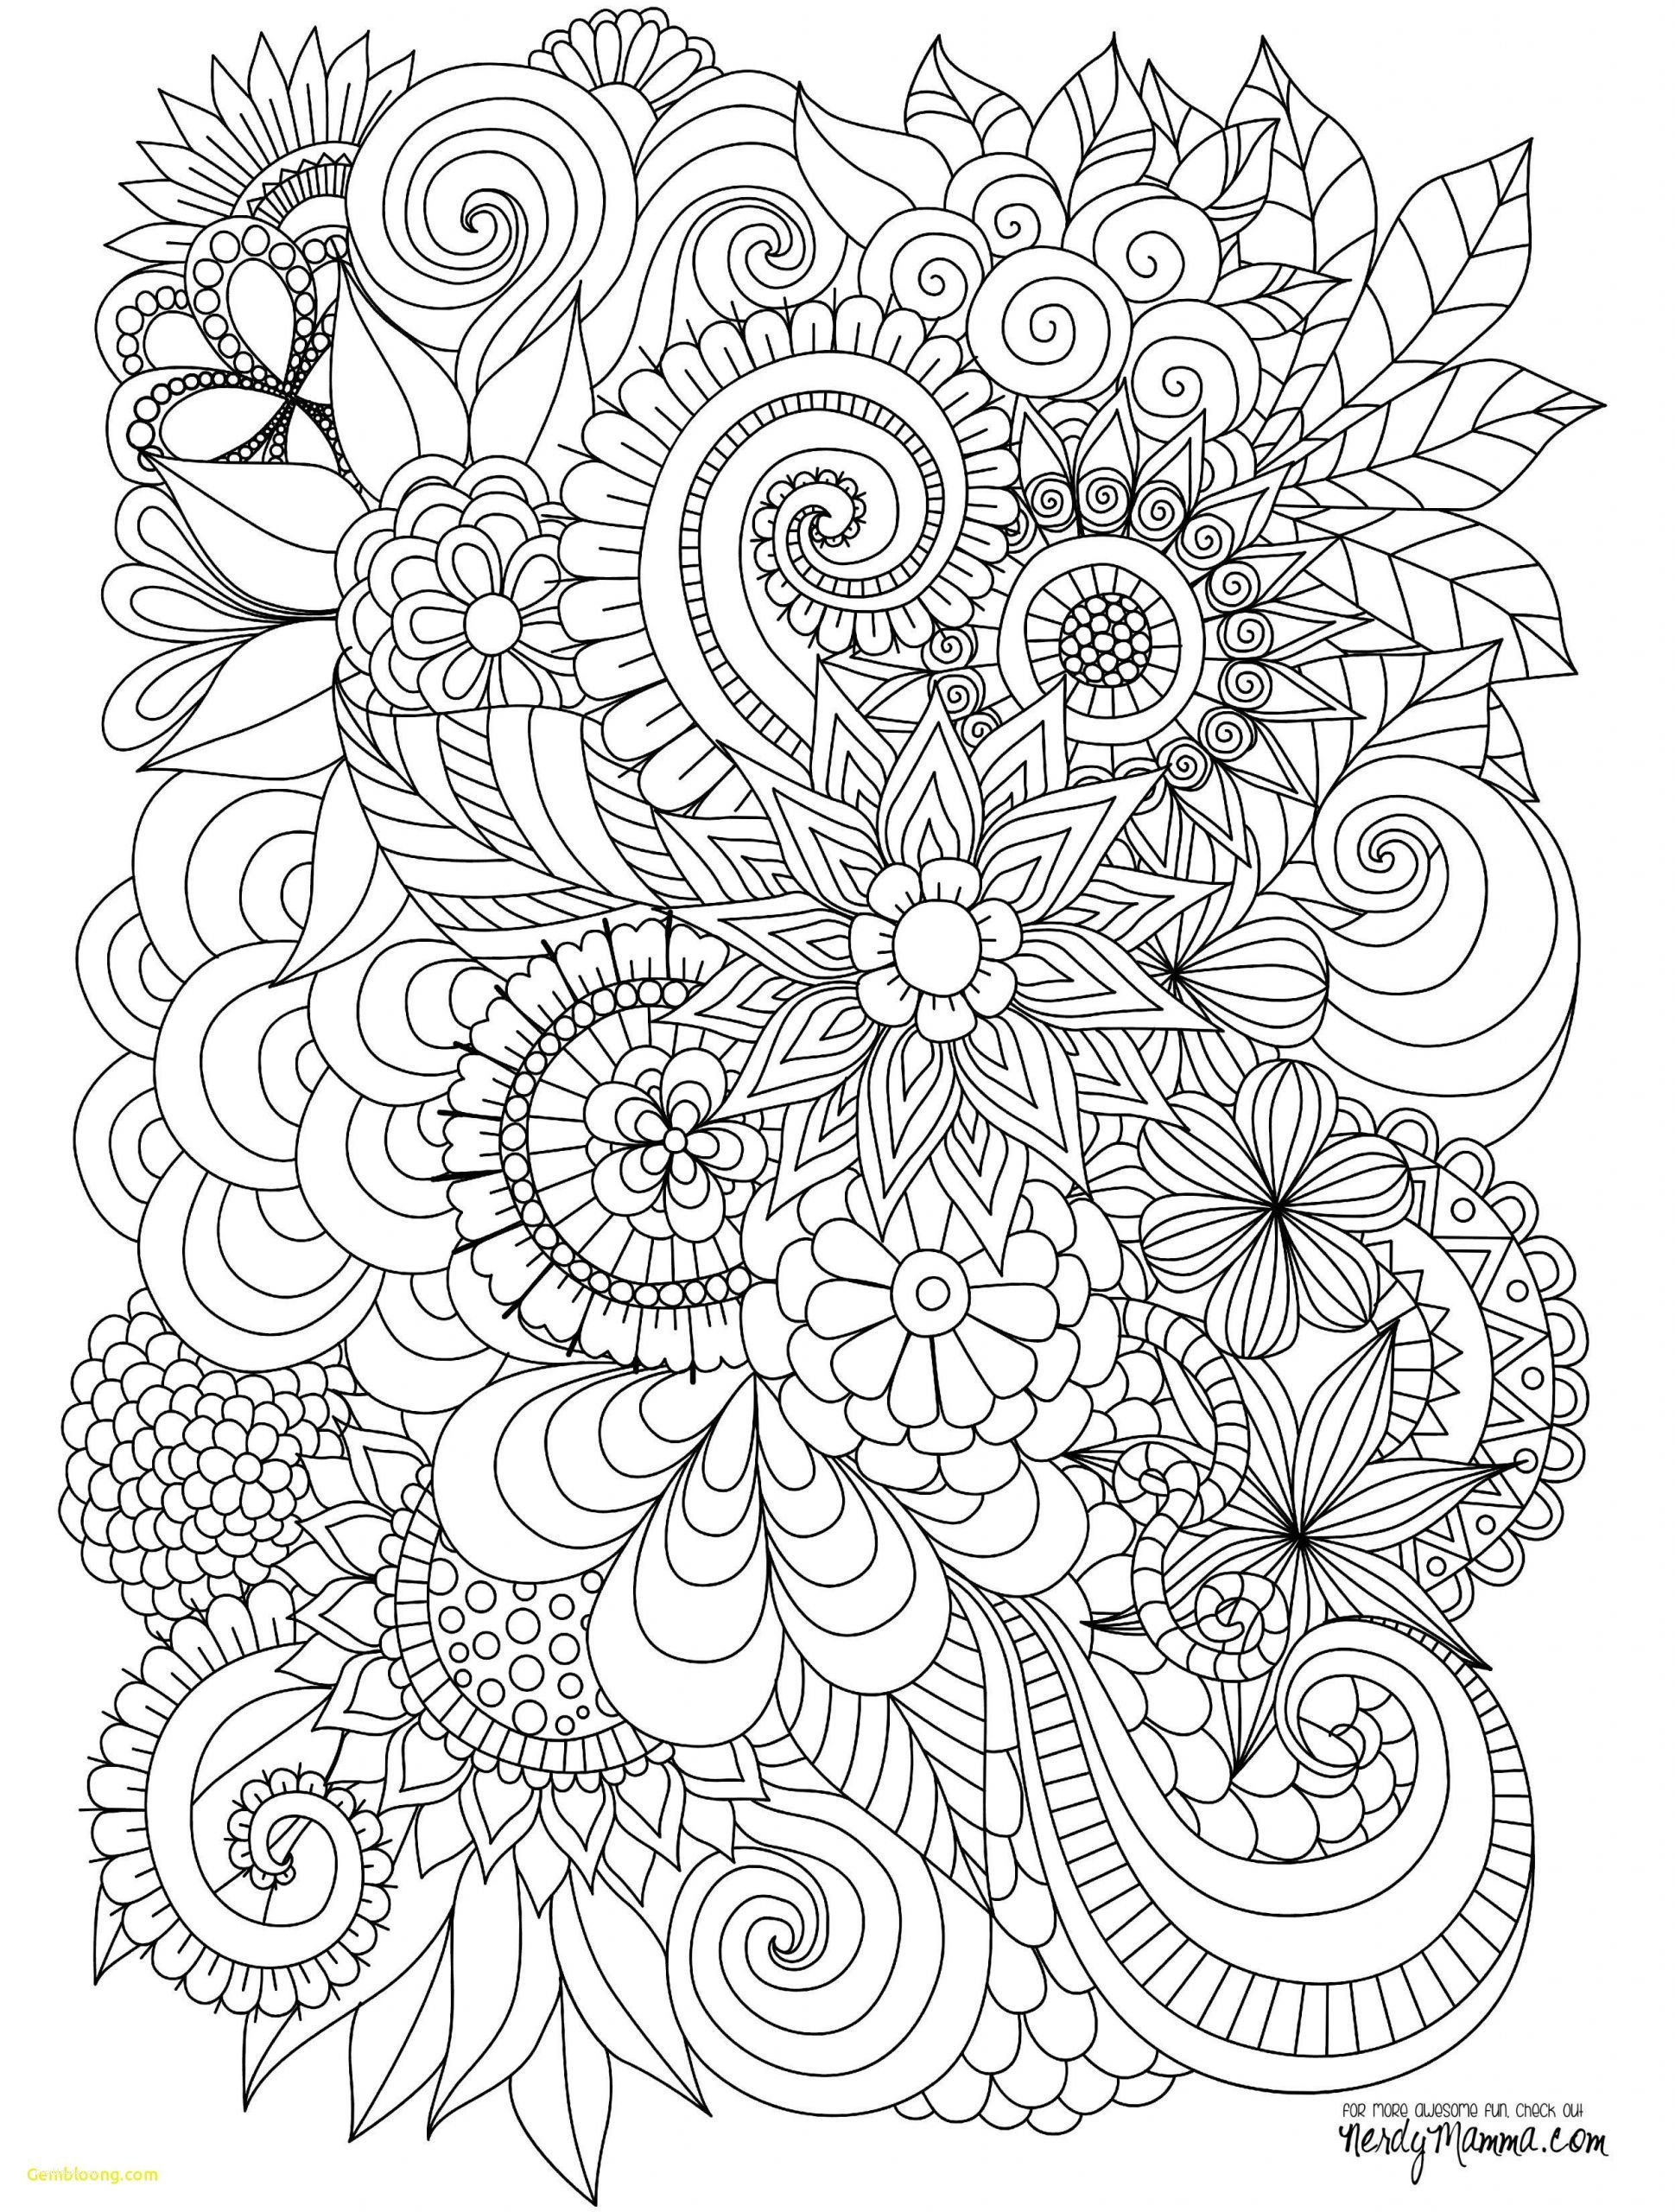 Pretty Mandala Coloring Pages Coloring Pages Mandala Coloring Book For Adults Pdf Lovely In 2020 Abstract Coloring Pages Detailed Coloring Pages Heart Coloring Pages